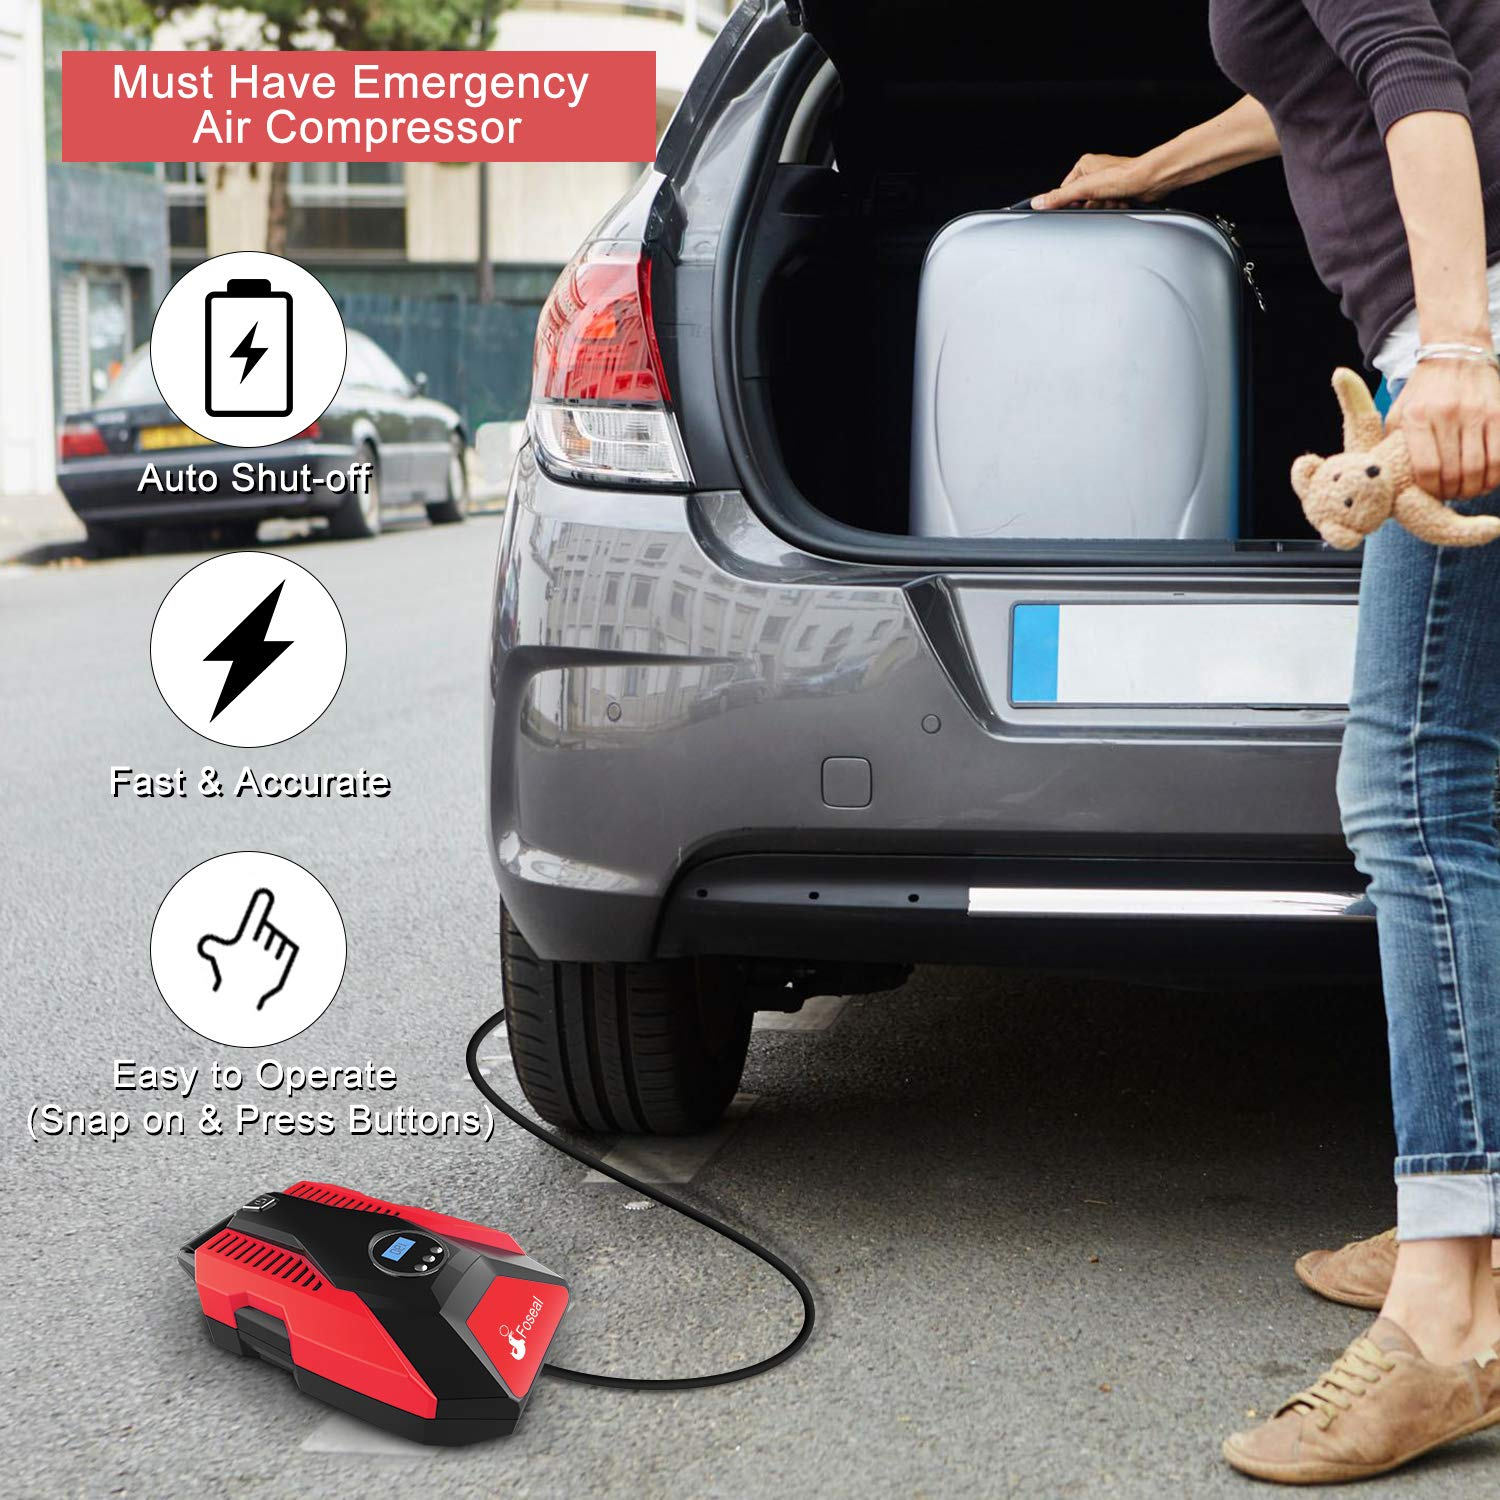 Amazon.com: Portable Air Compressor Tire Pump, Foseal Auto Shutoff Digital Tire Inflator 12V 150 PSI Easy to Use,Overheat Protection,Fast,Low Noisy for Car ...